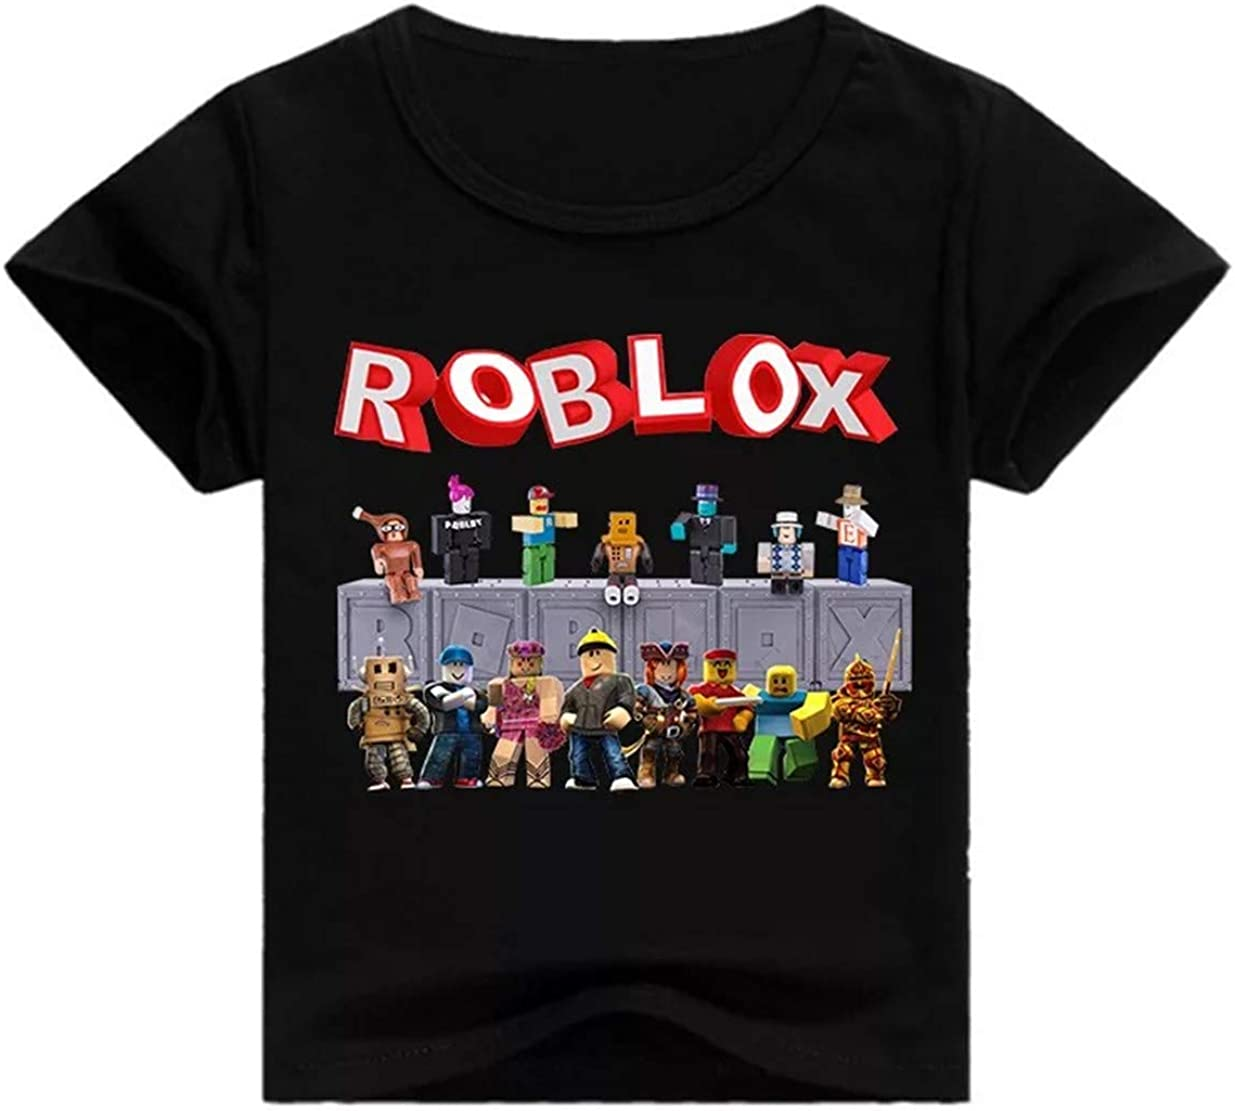 Roblox Game Boys And Girls Ku Lee Unisex Roblox Game T Shirts Summer Short Sleeve Shirts For Boys Girls 2t 12 Years Black Amazon Ca Clothing Accessories